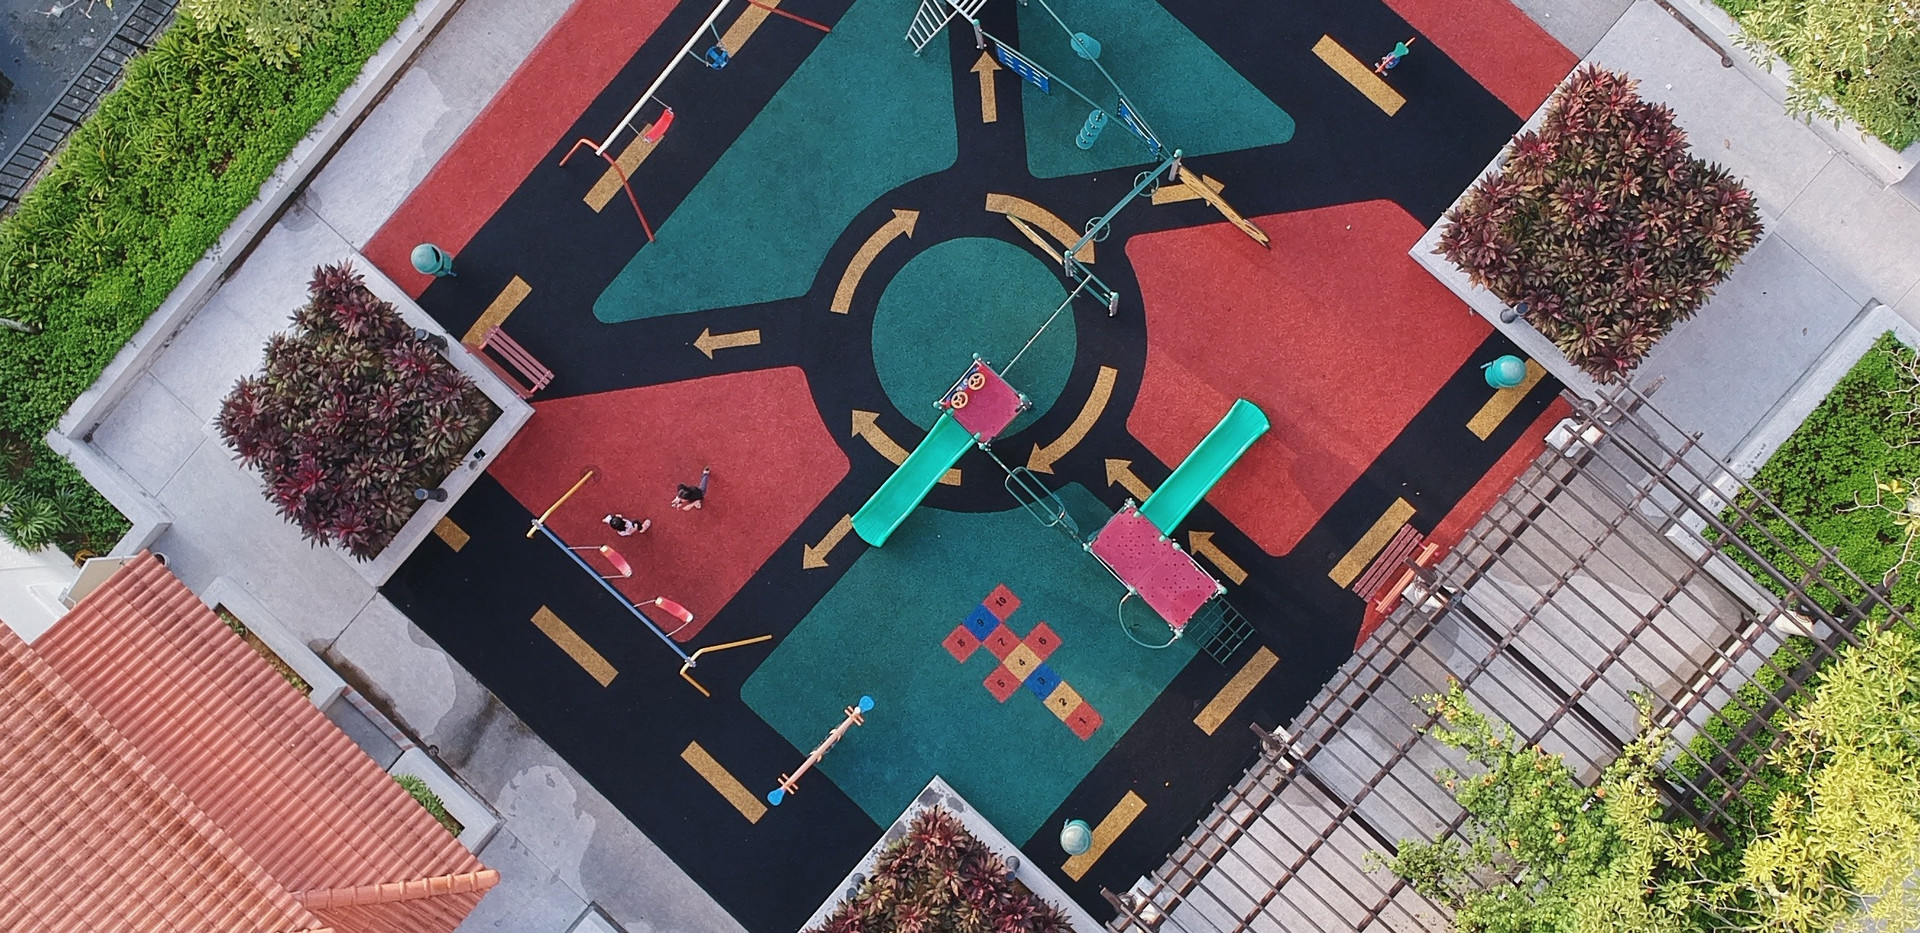 Arial view of playground